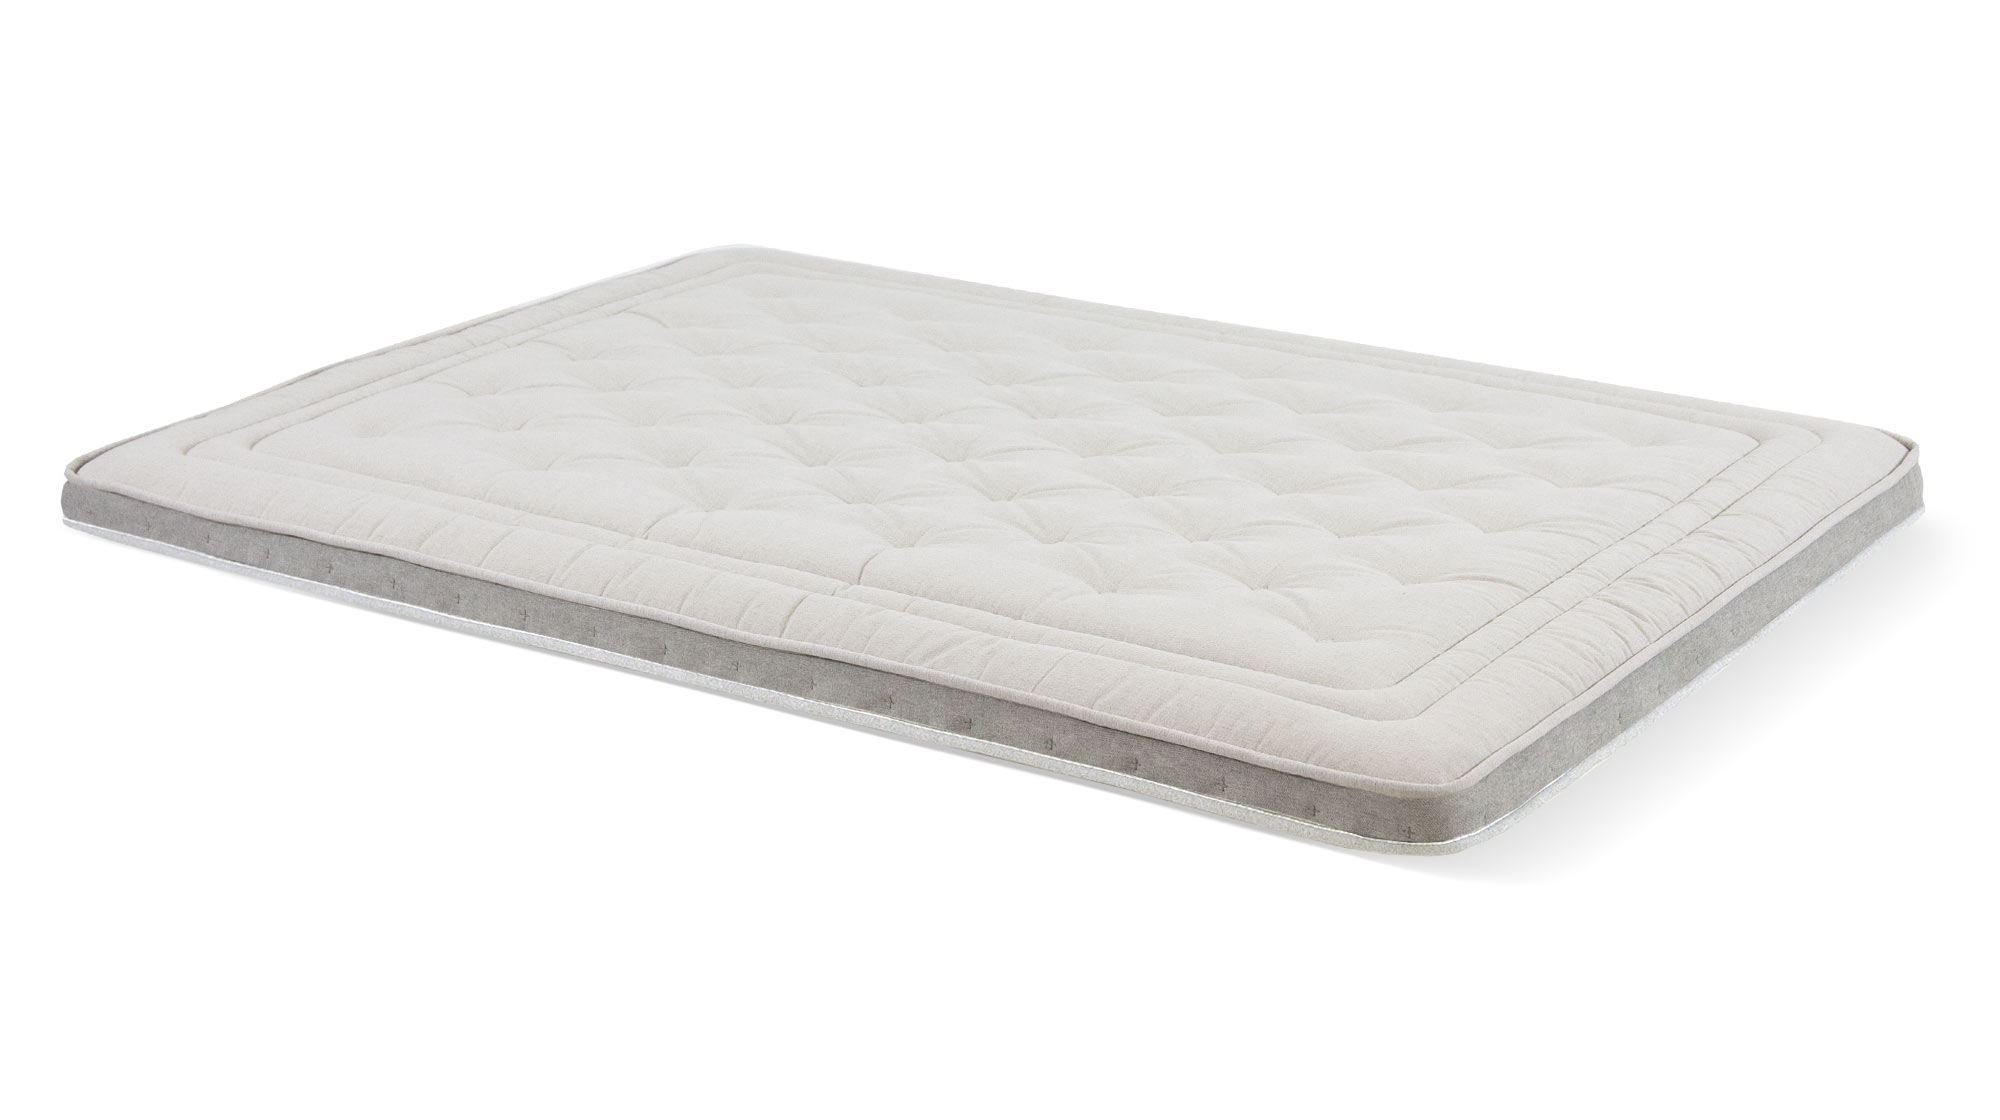 Sur-Matelas Oxicell Everest